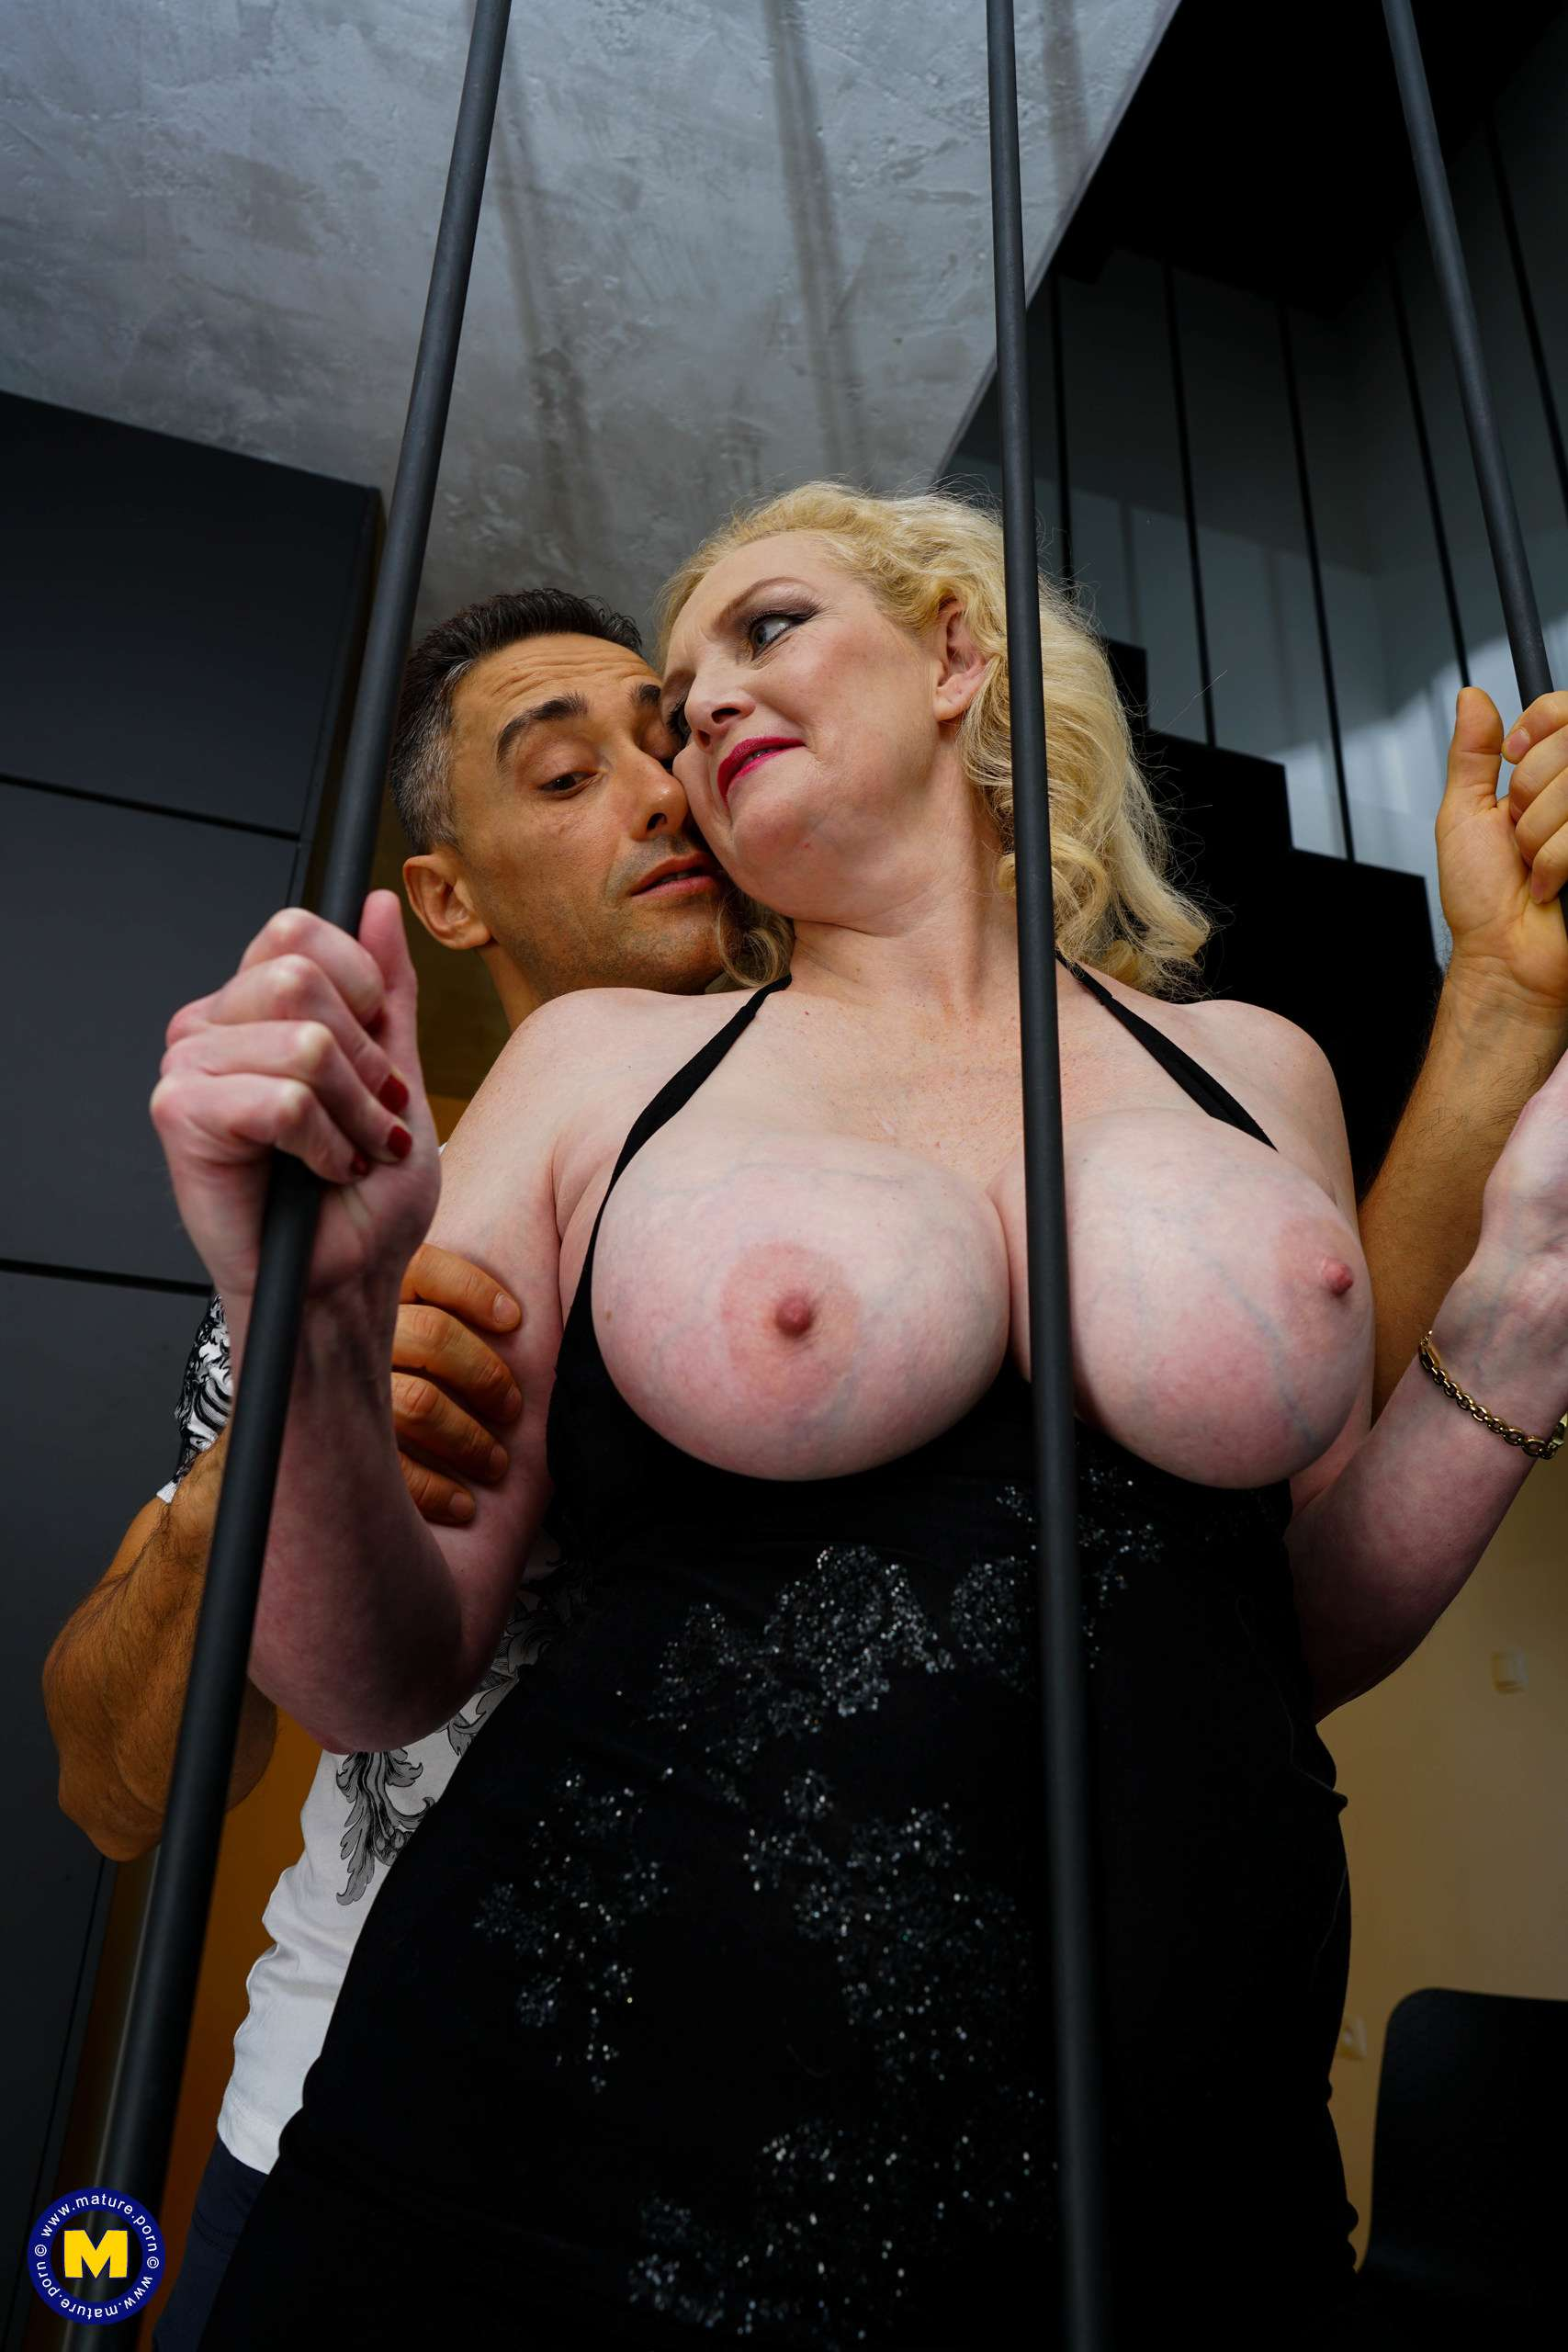 Big breasted MILF fucking and sucking her ass off